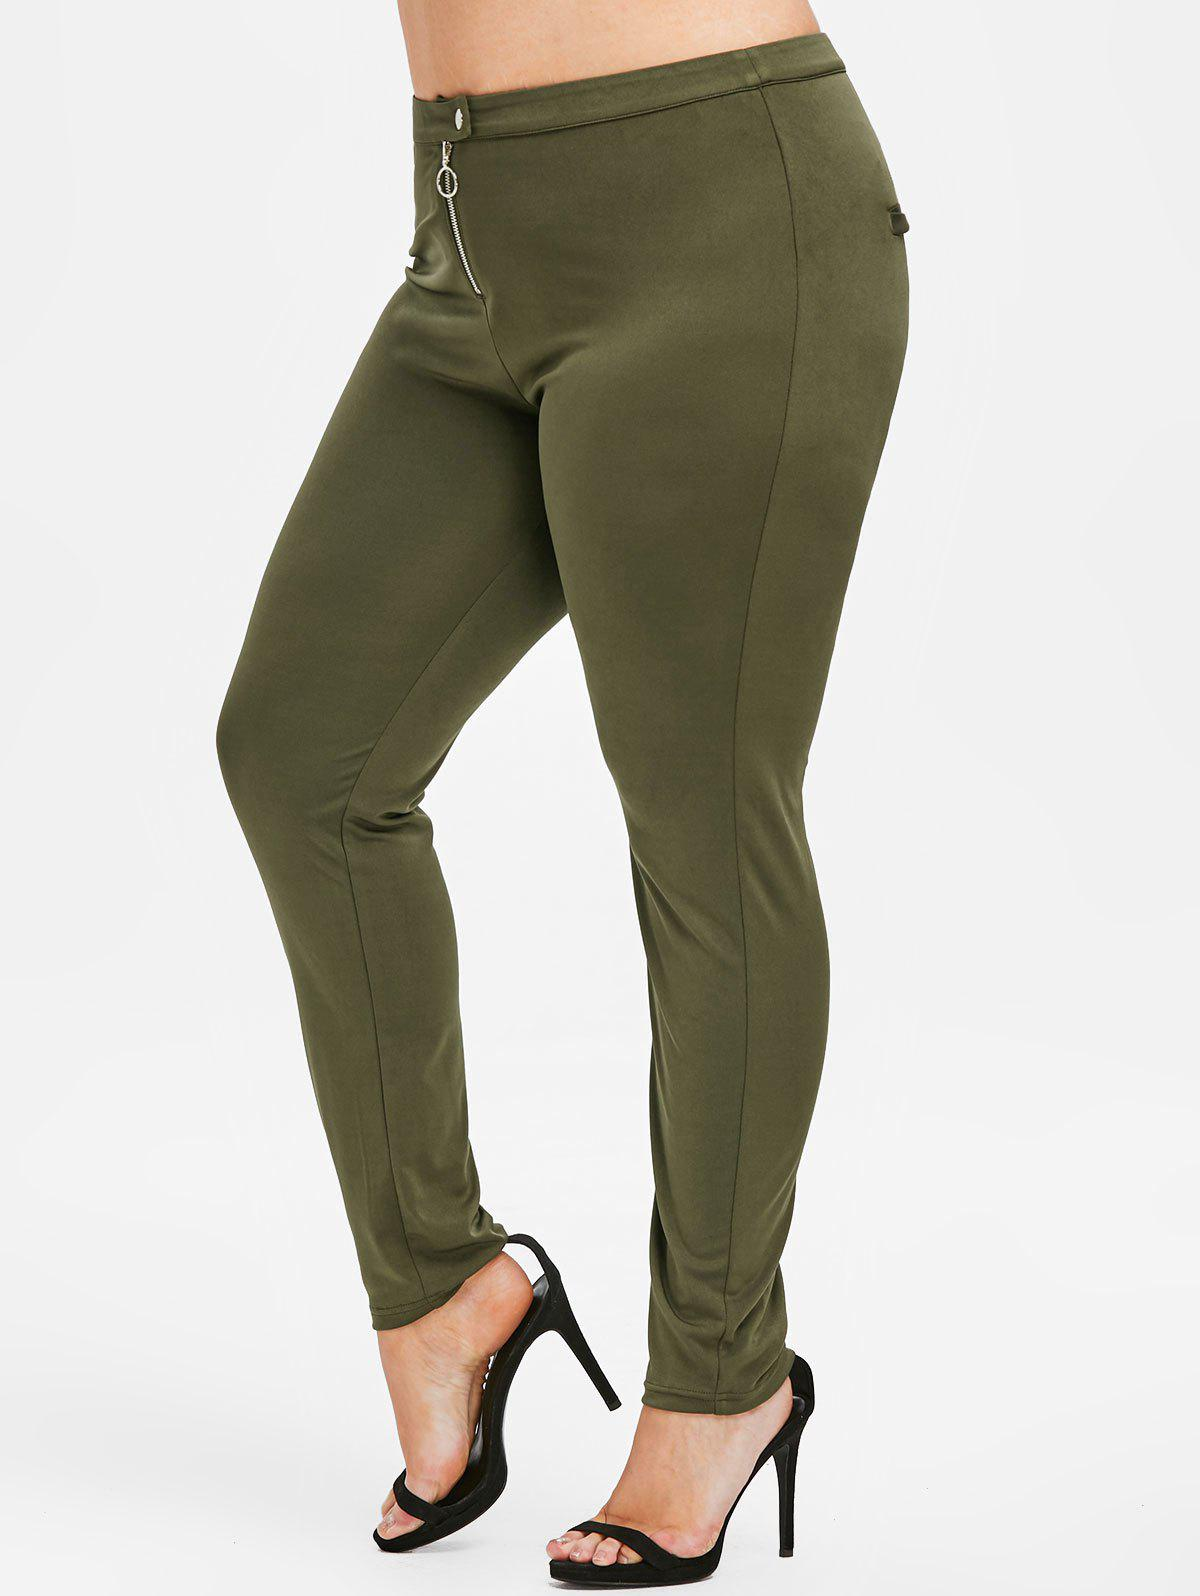 Affordable Rosegal Plus Size Zipper Fly Skinny Pants